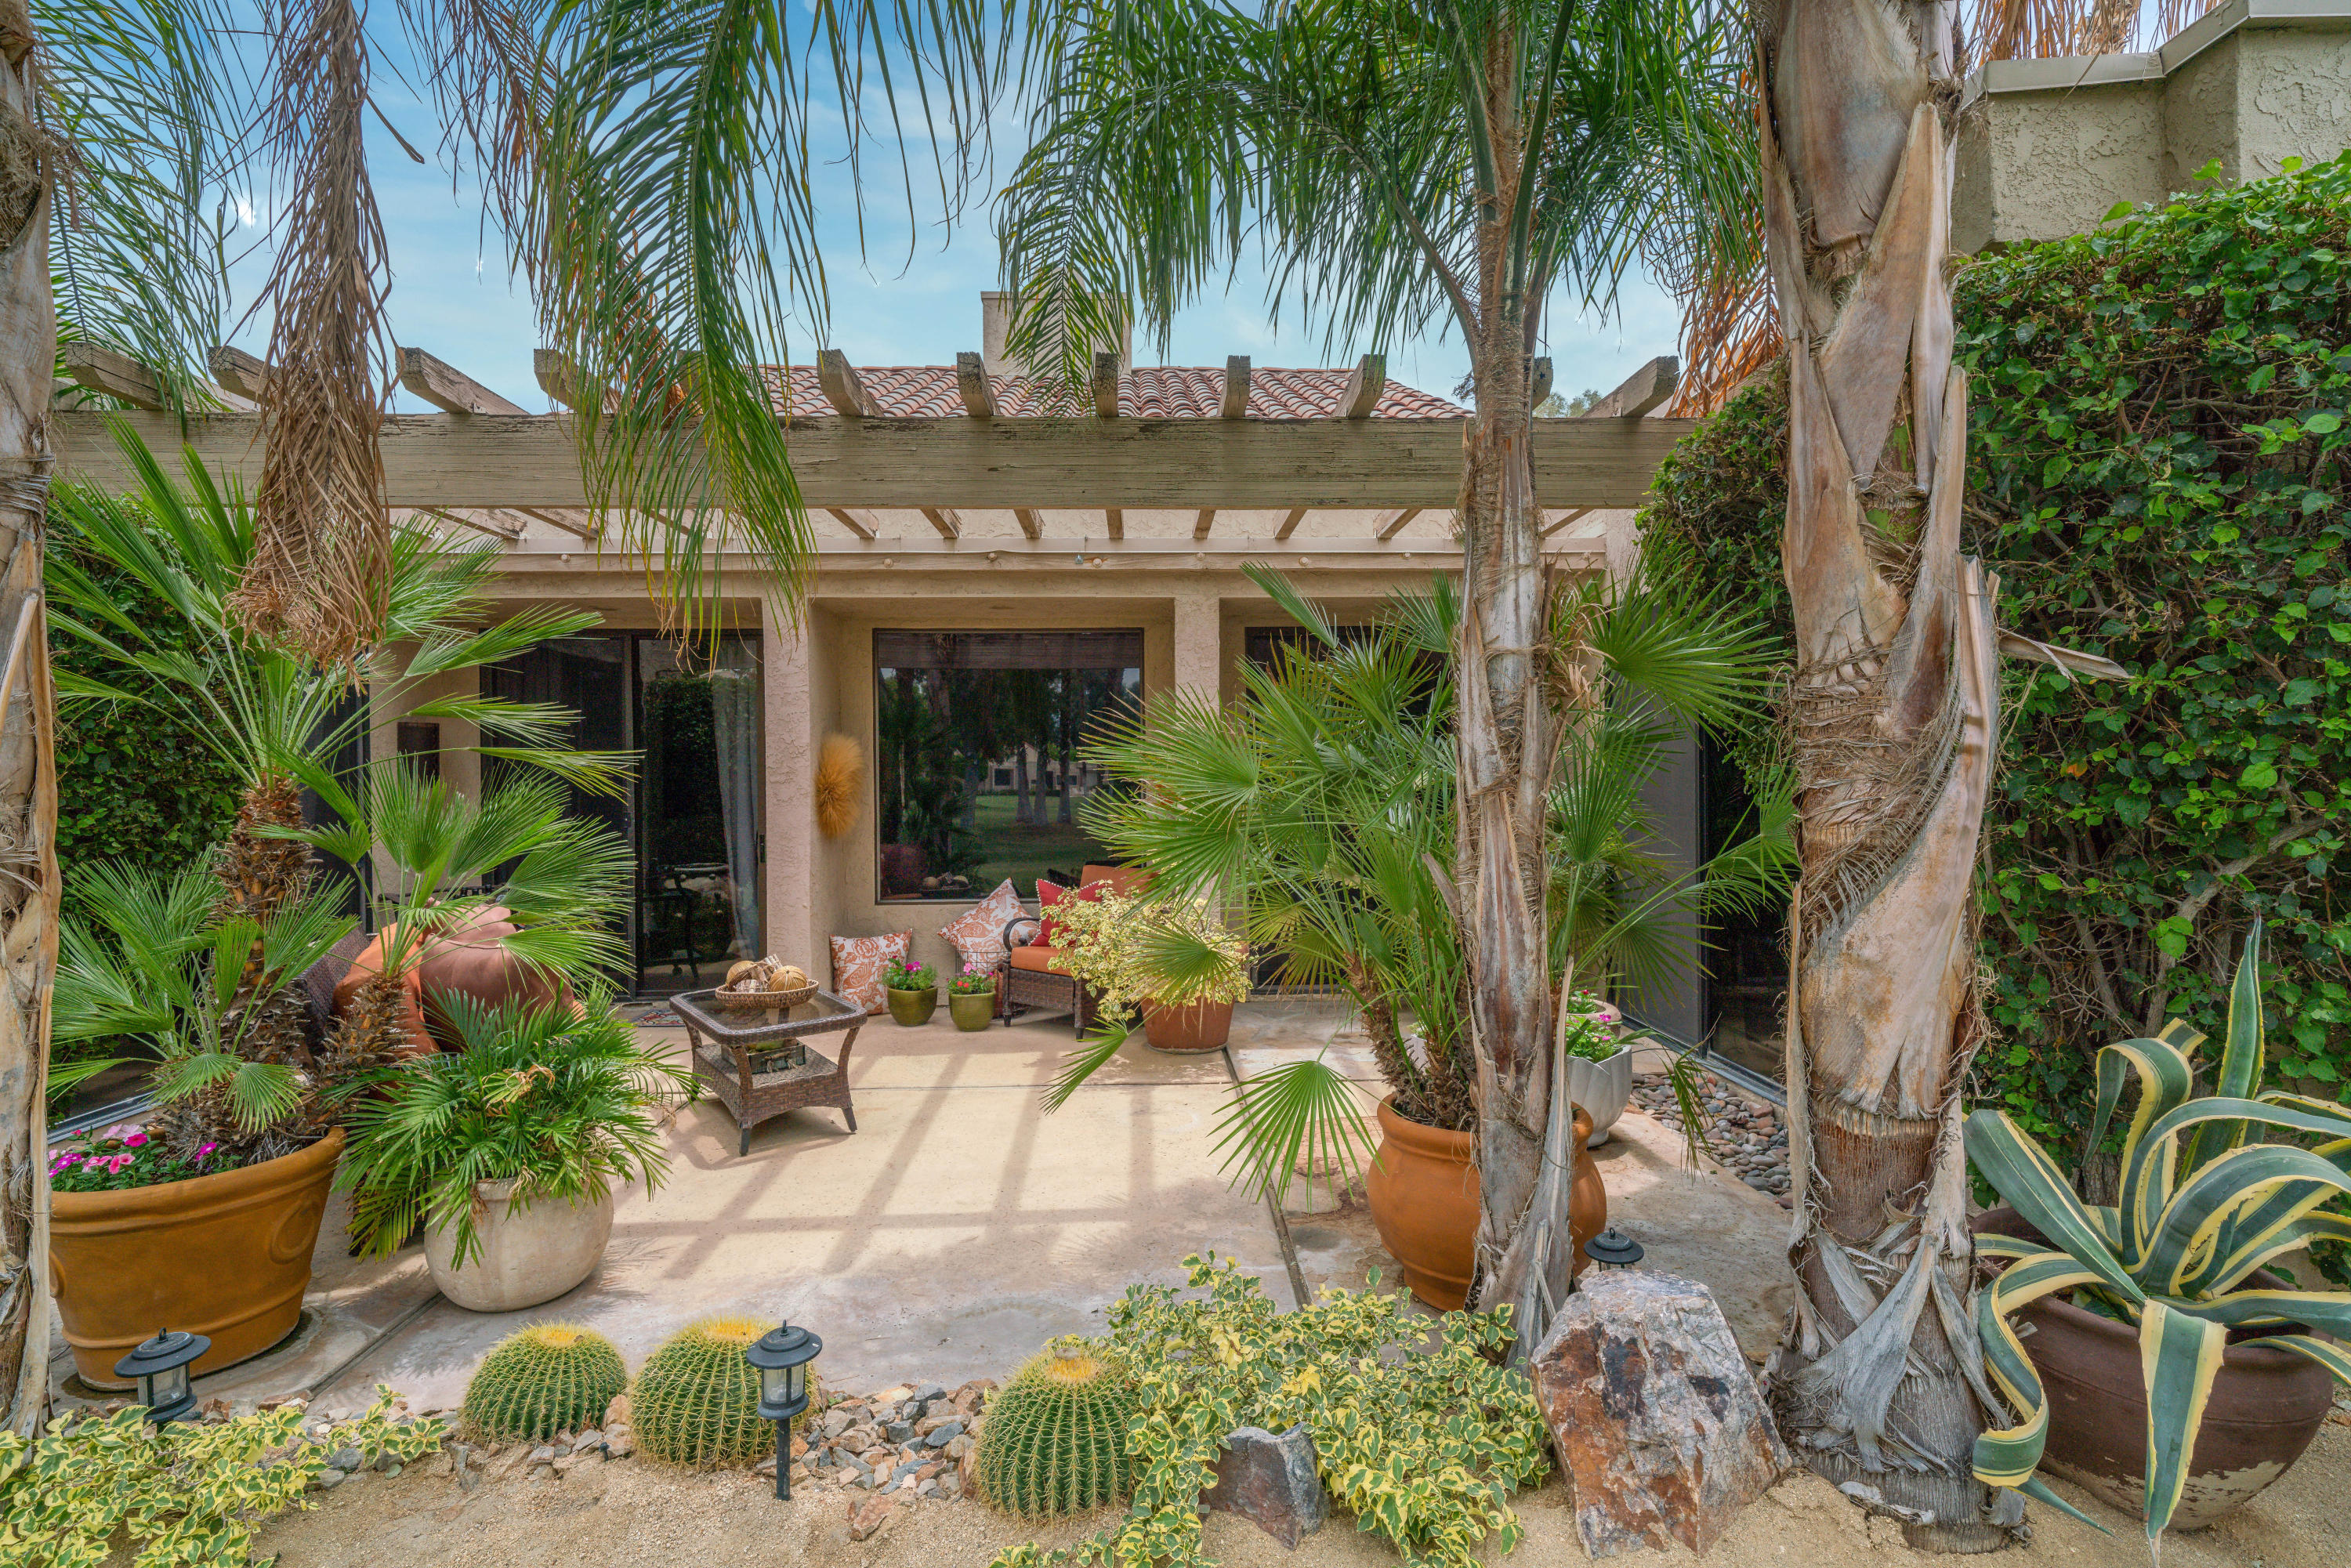 709 Inverness Drive, Rancho Mirage, California 92270, 3 Bedrooms Bedrooms, ,3 BathroomsBathrooms,Residential,For Sale,709 Inverness Drive,219043966